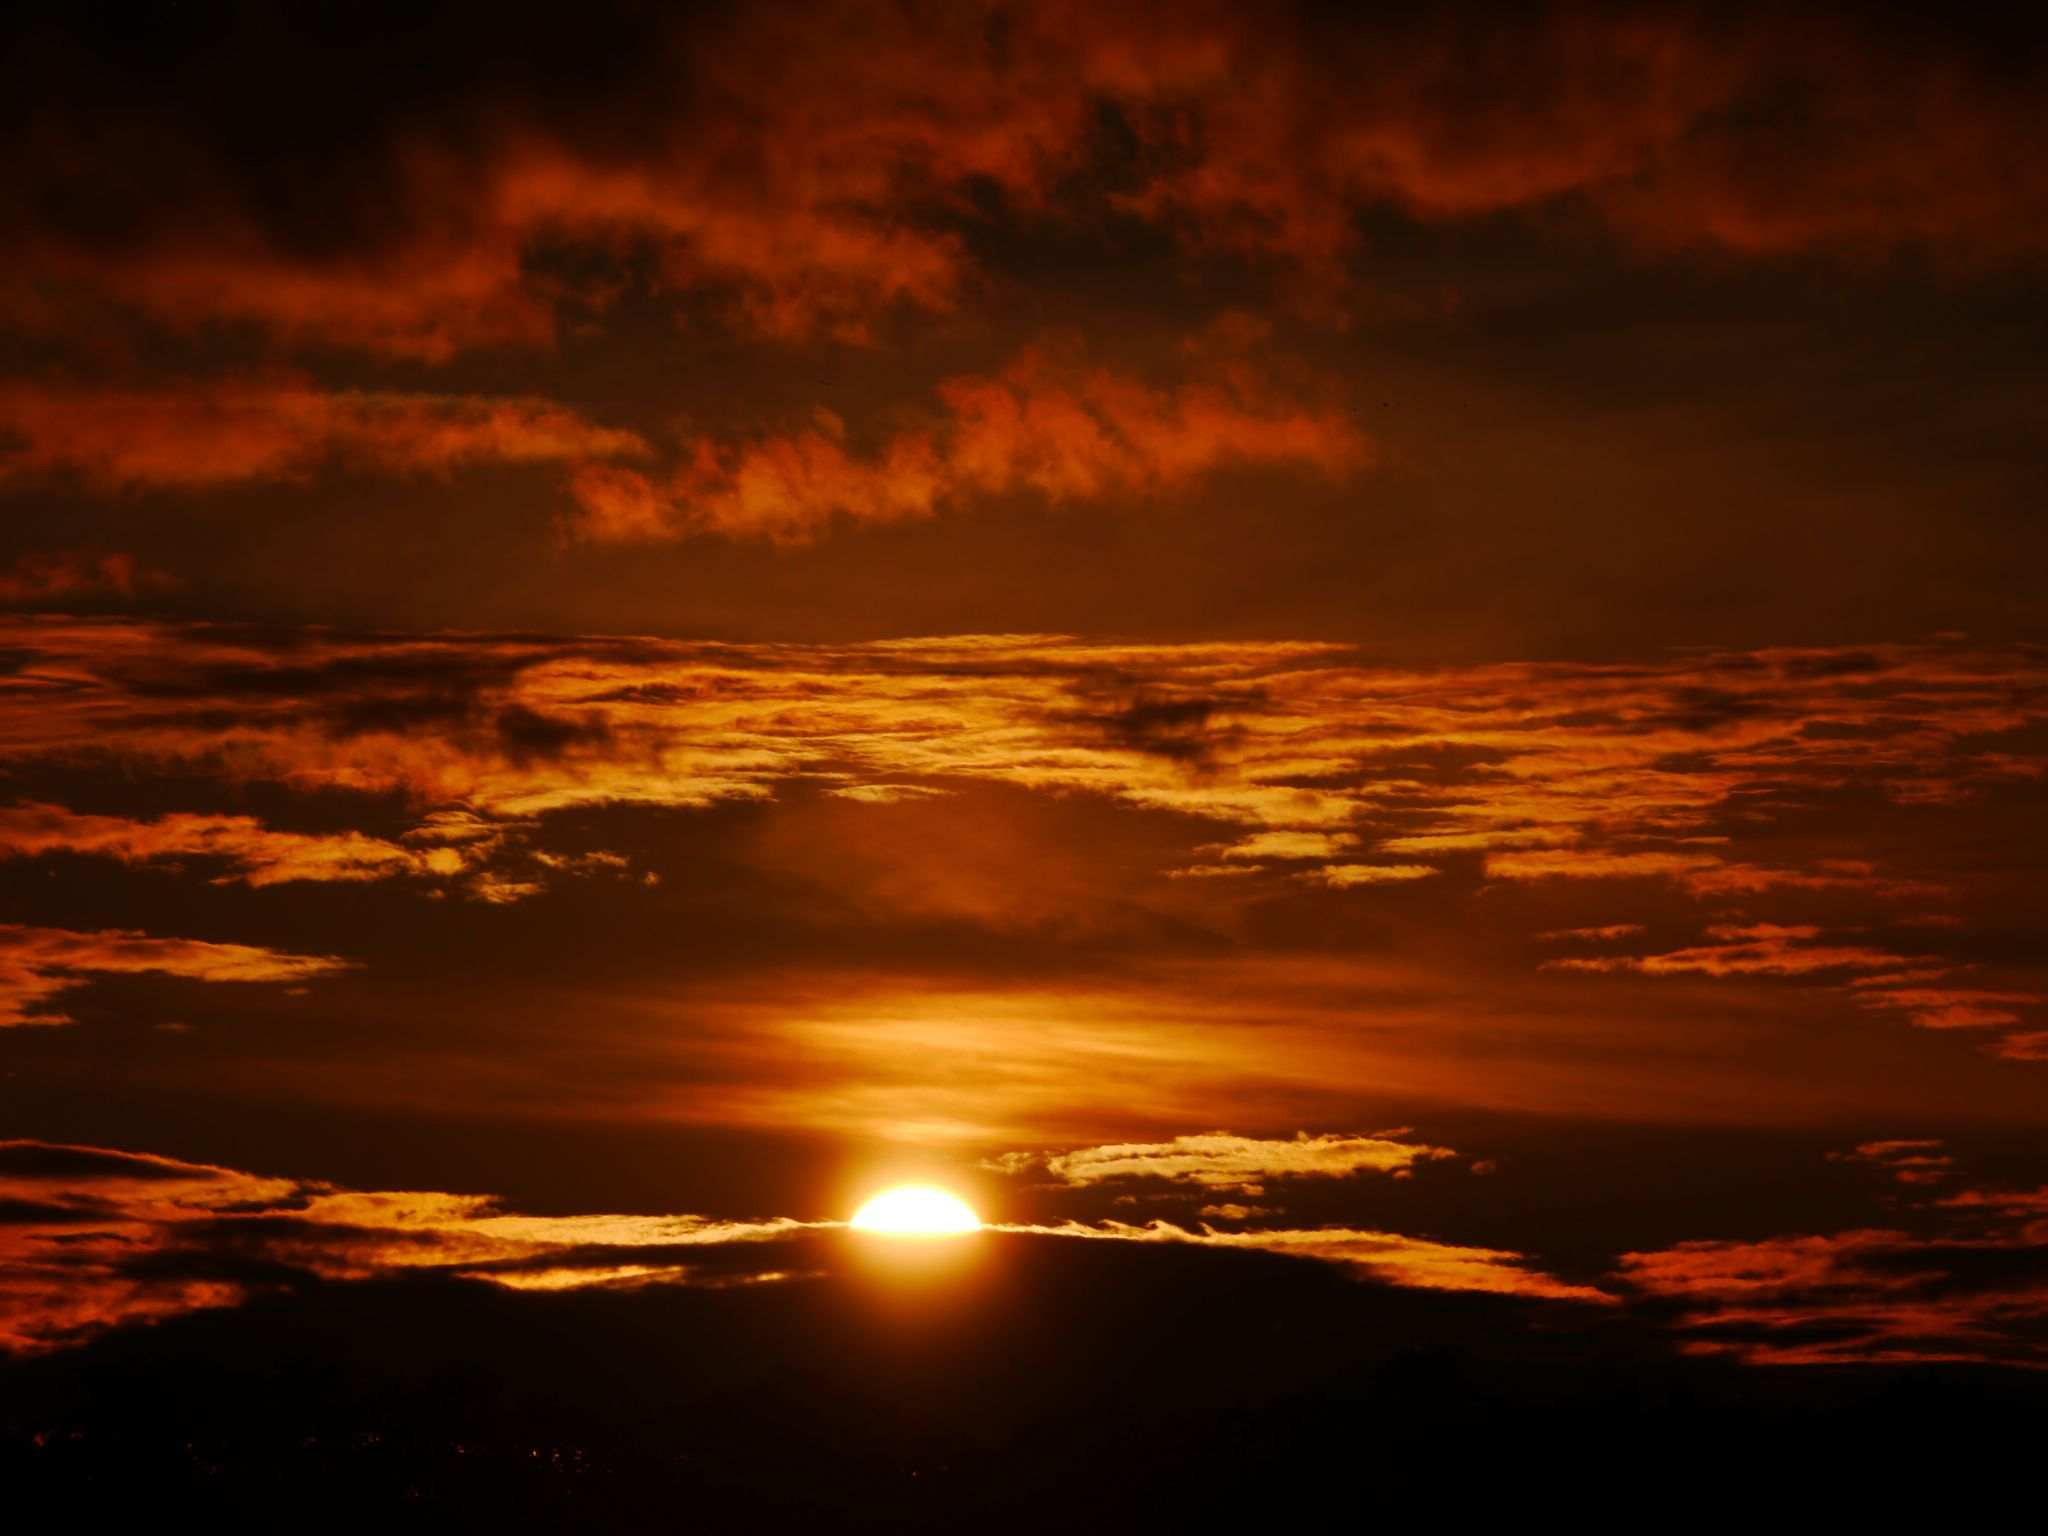 Sunset over the Moor tonight by Darren Turner